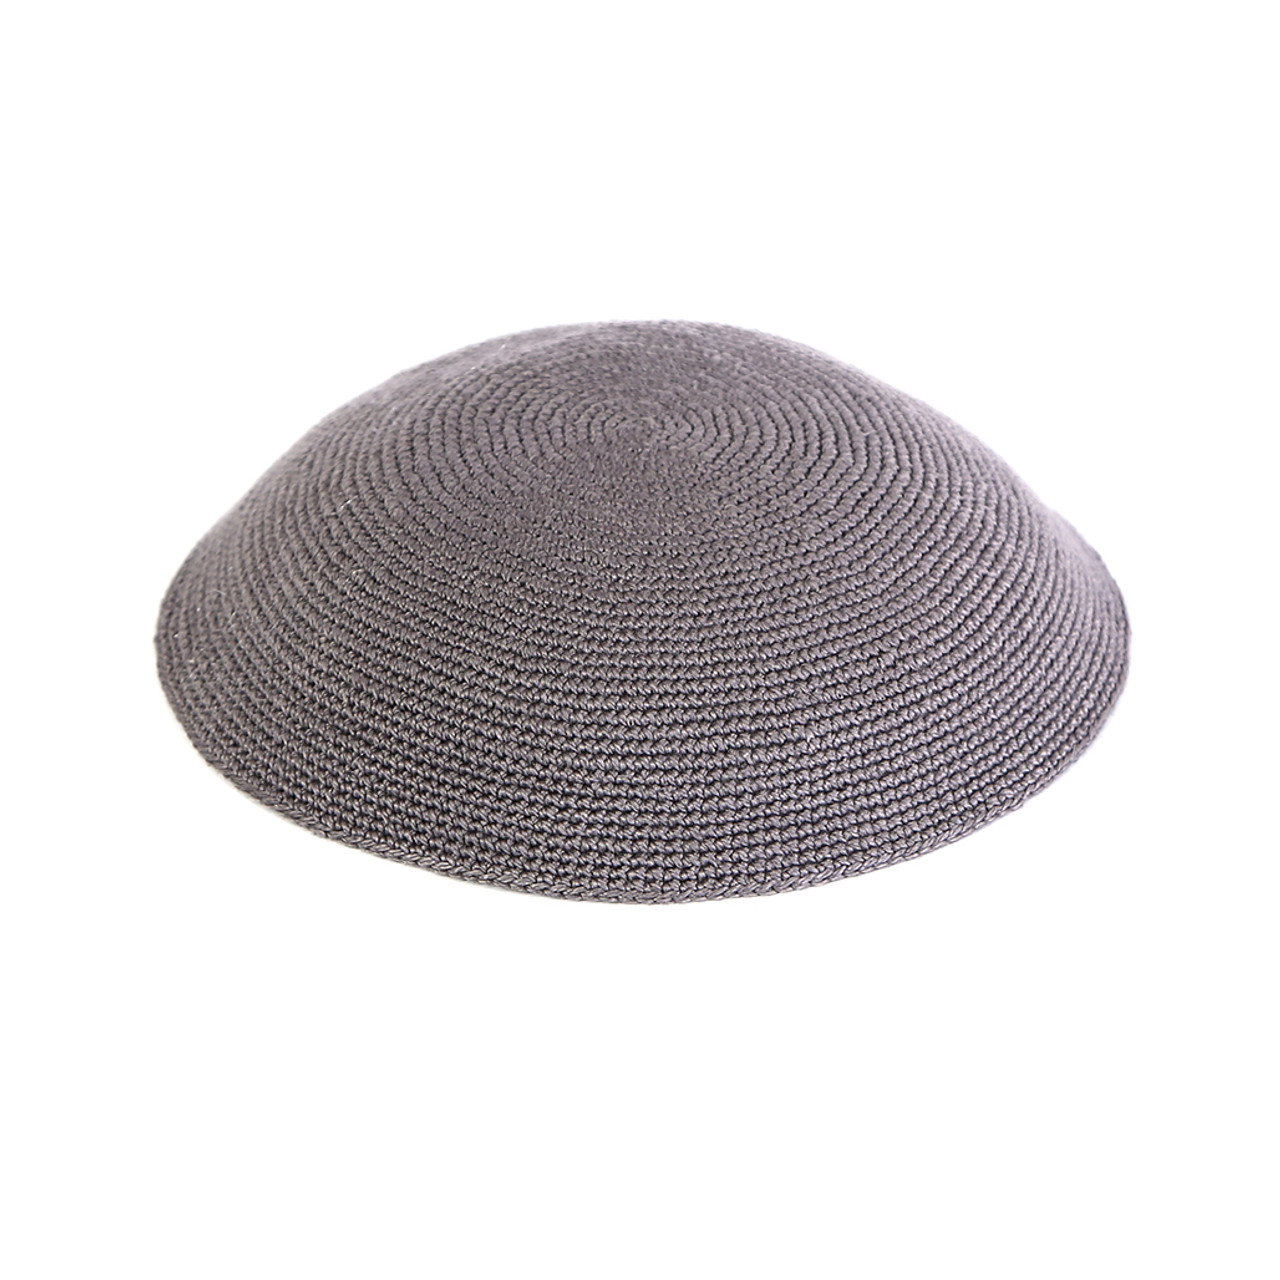 Gray Knitted Kippah